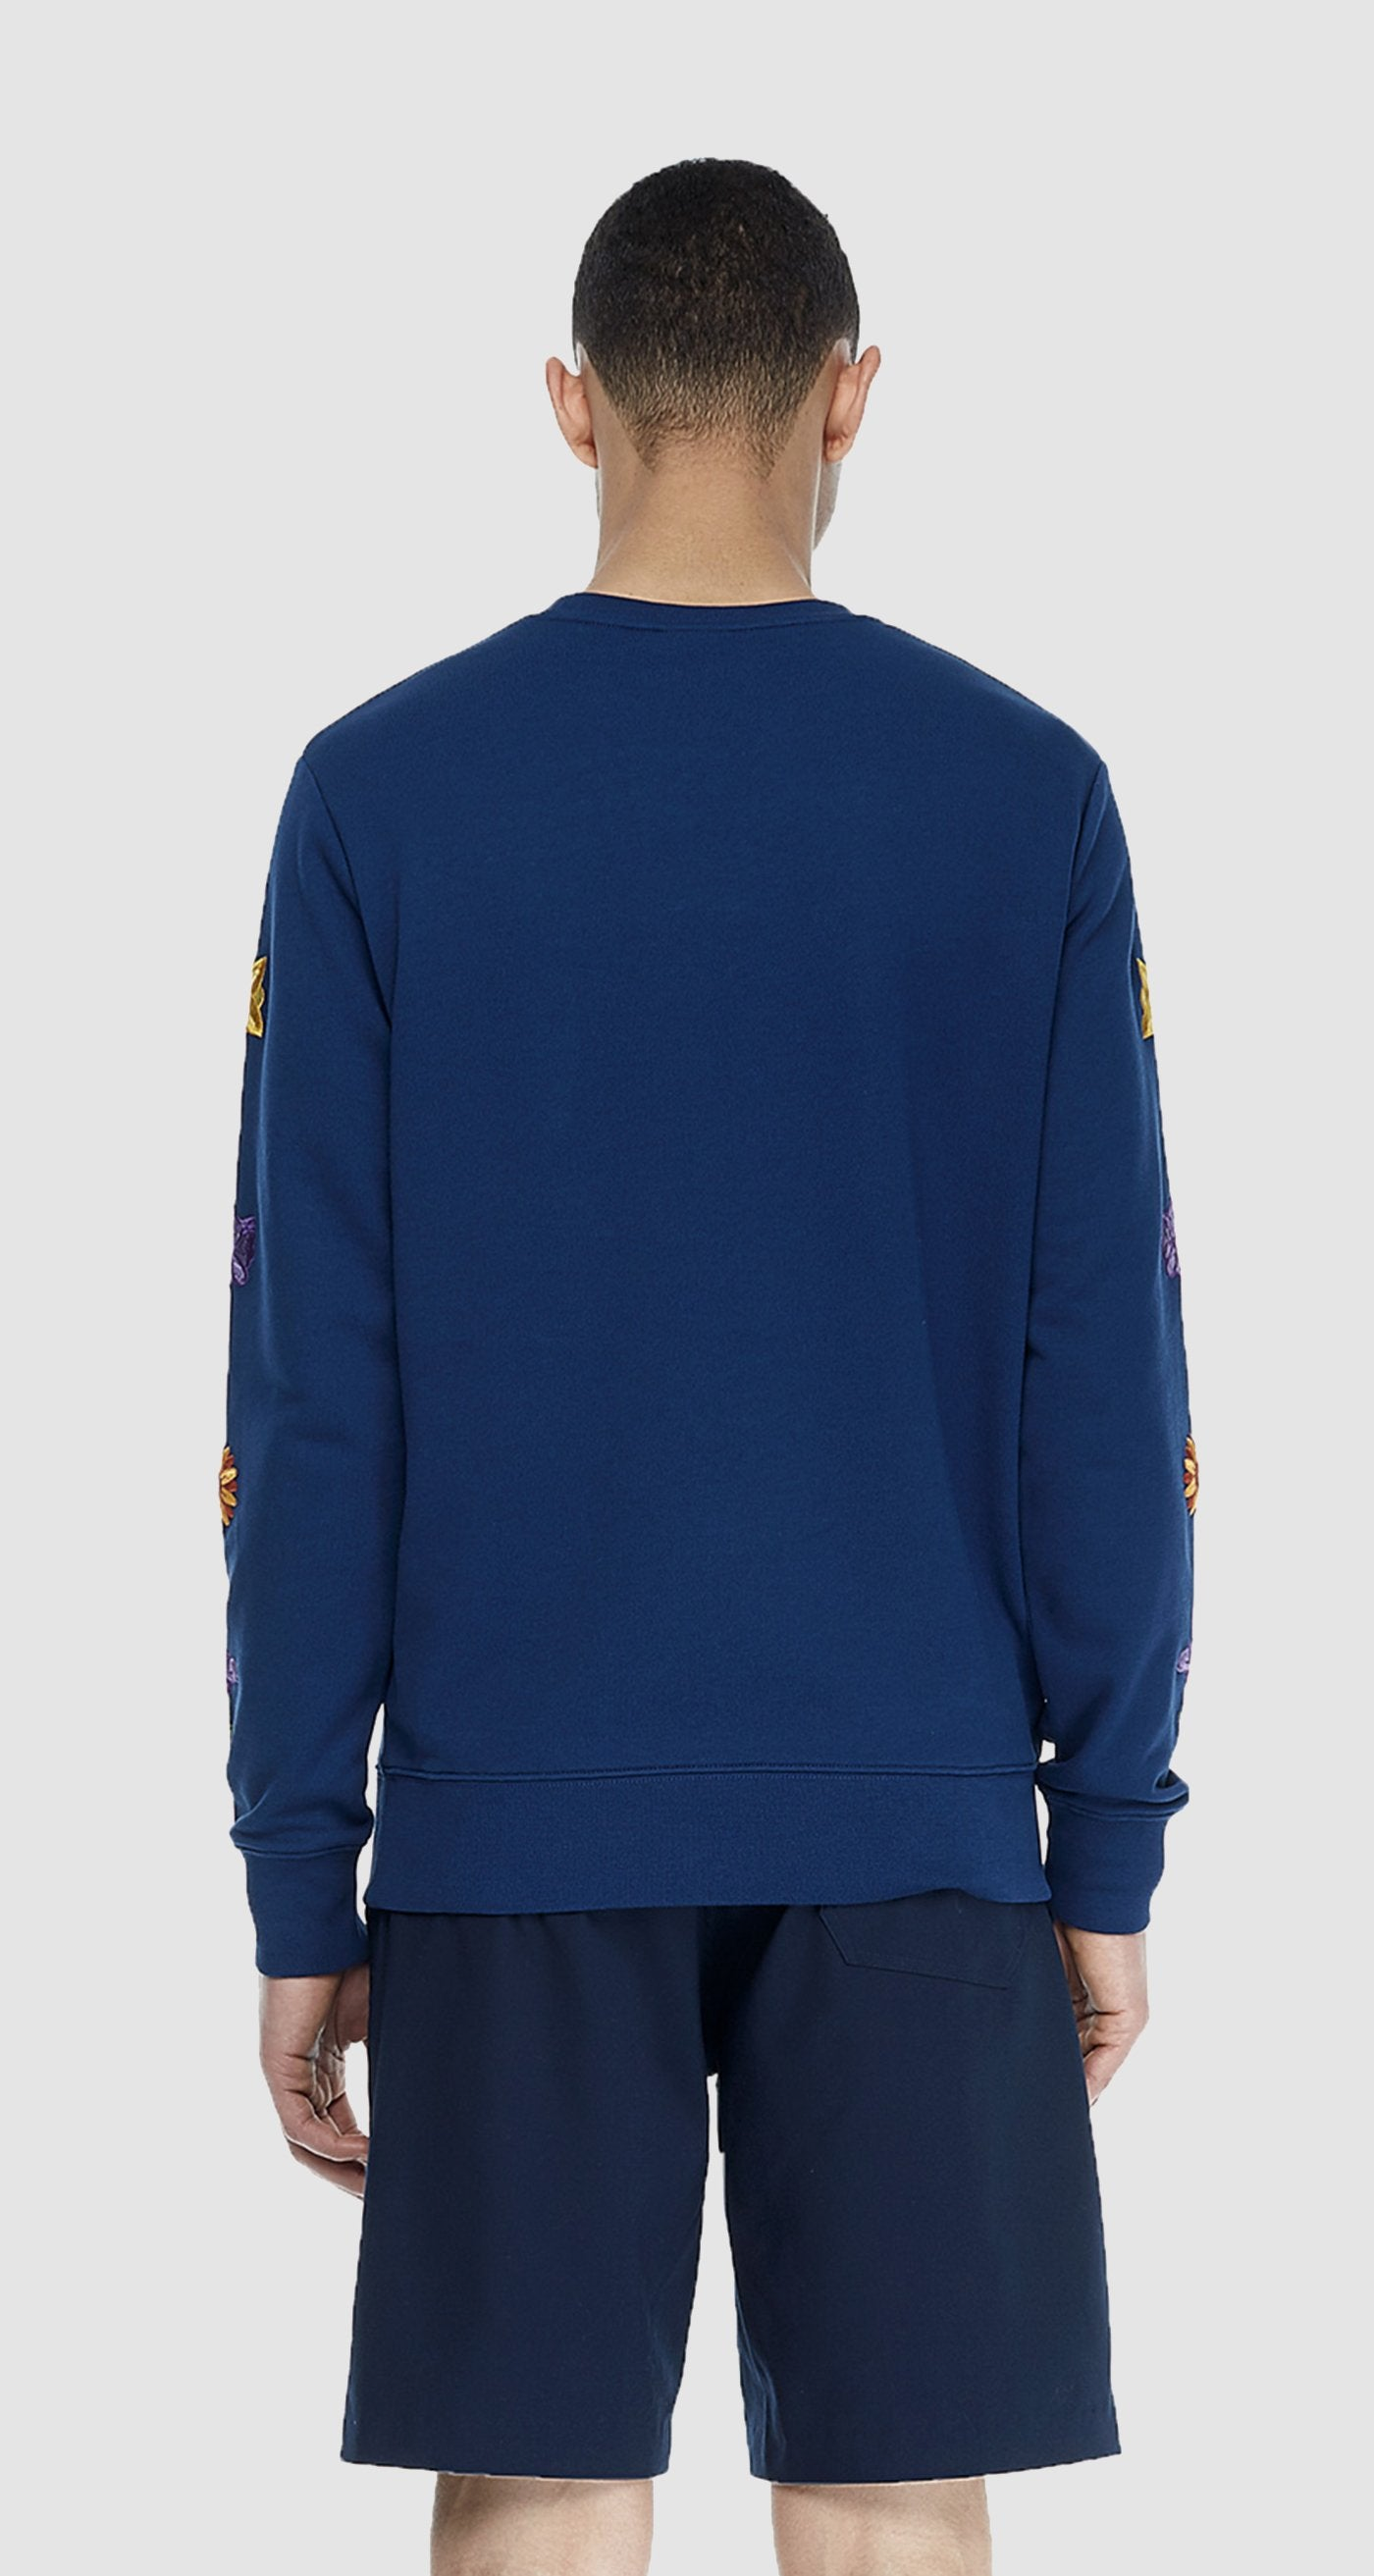 Navy Flower Sweater